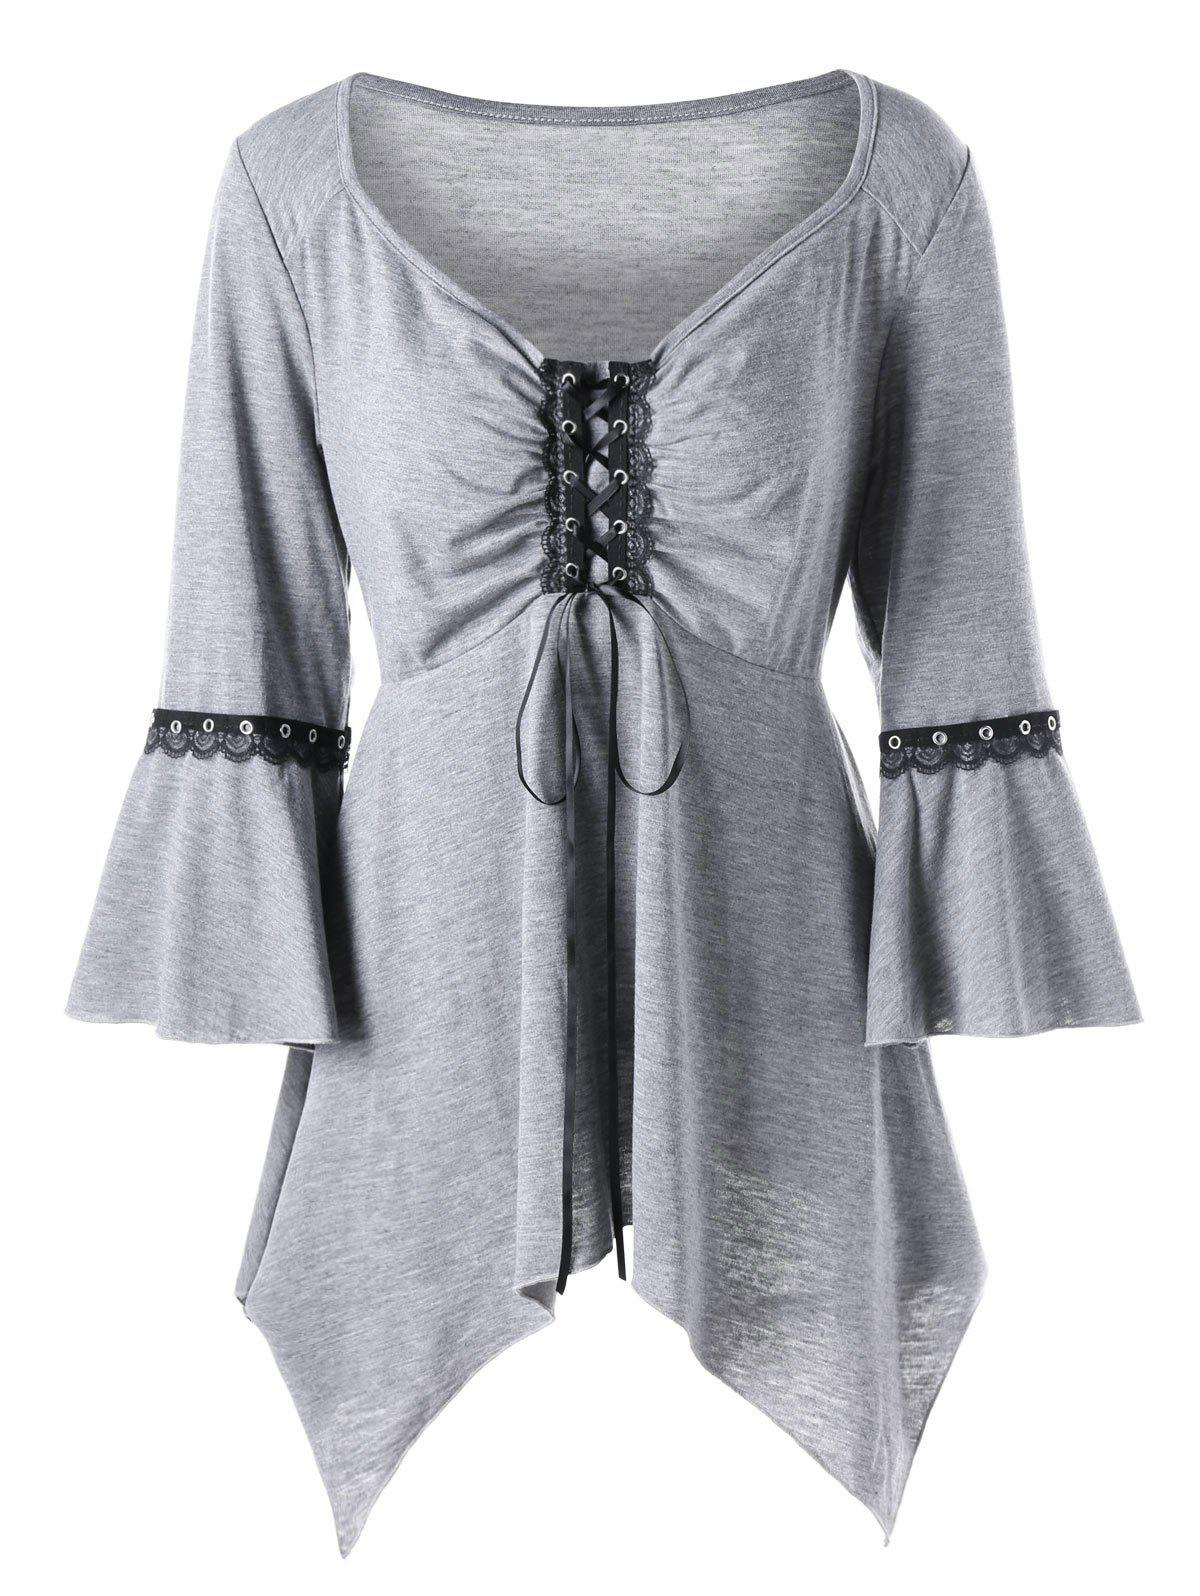 Plus Size Flare Sleeve Lace Up TeeWOMEN<br><br>Size: 4XL; Color: LIGHT GRAY; Material: Polyester,Spandex; Shirt Length: Regular; Sleeve Length: Three Quarter; Collar: V-Neck; Style: Gothic; Season: Fall,Spring,Summer; Embellishment: Lace; Pattern Type: Solid; Weight: 0.3000kg; Package Contents: 1 x T-shirt;